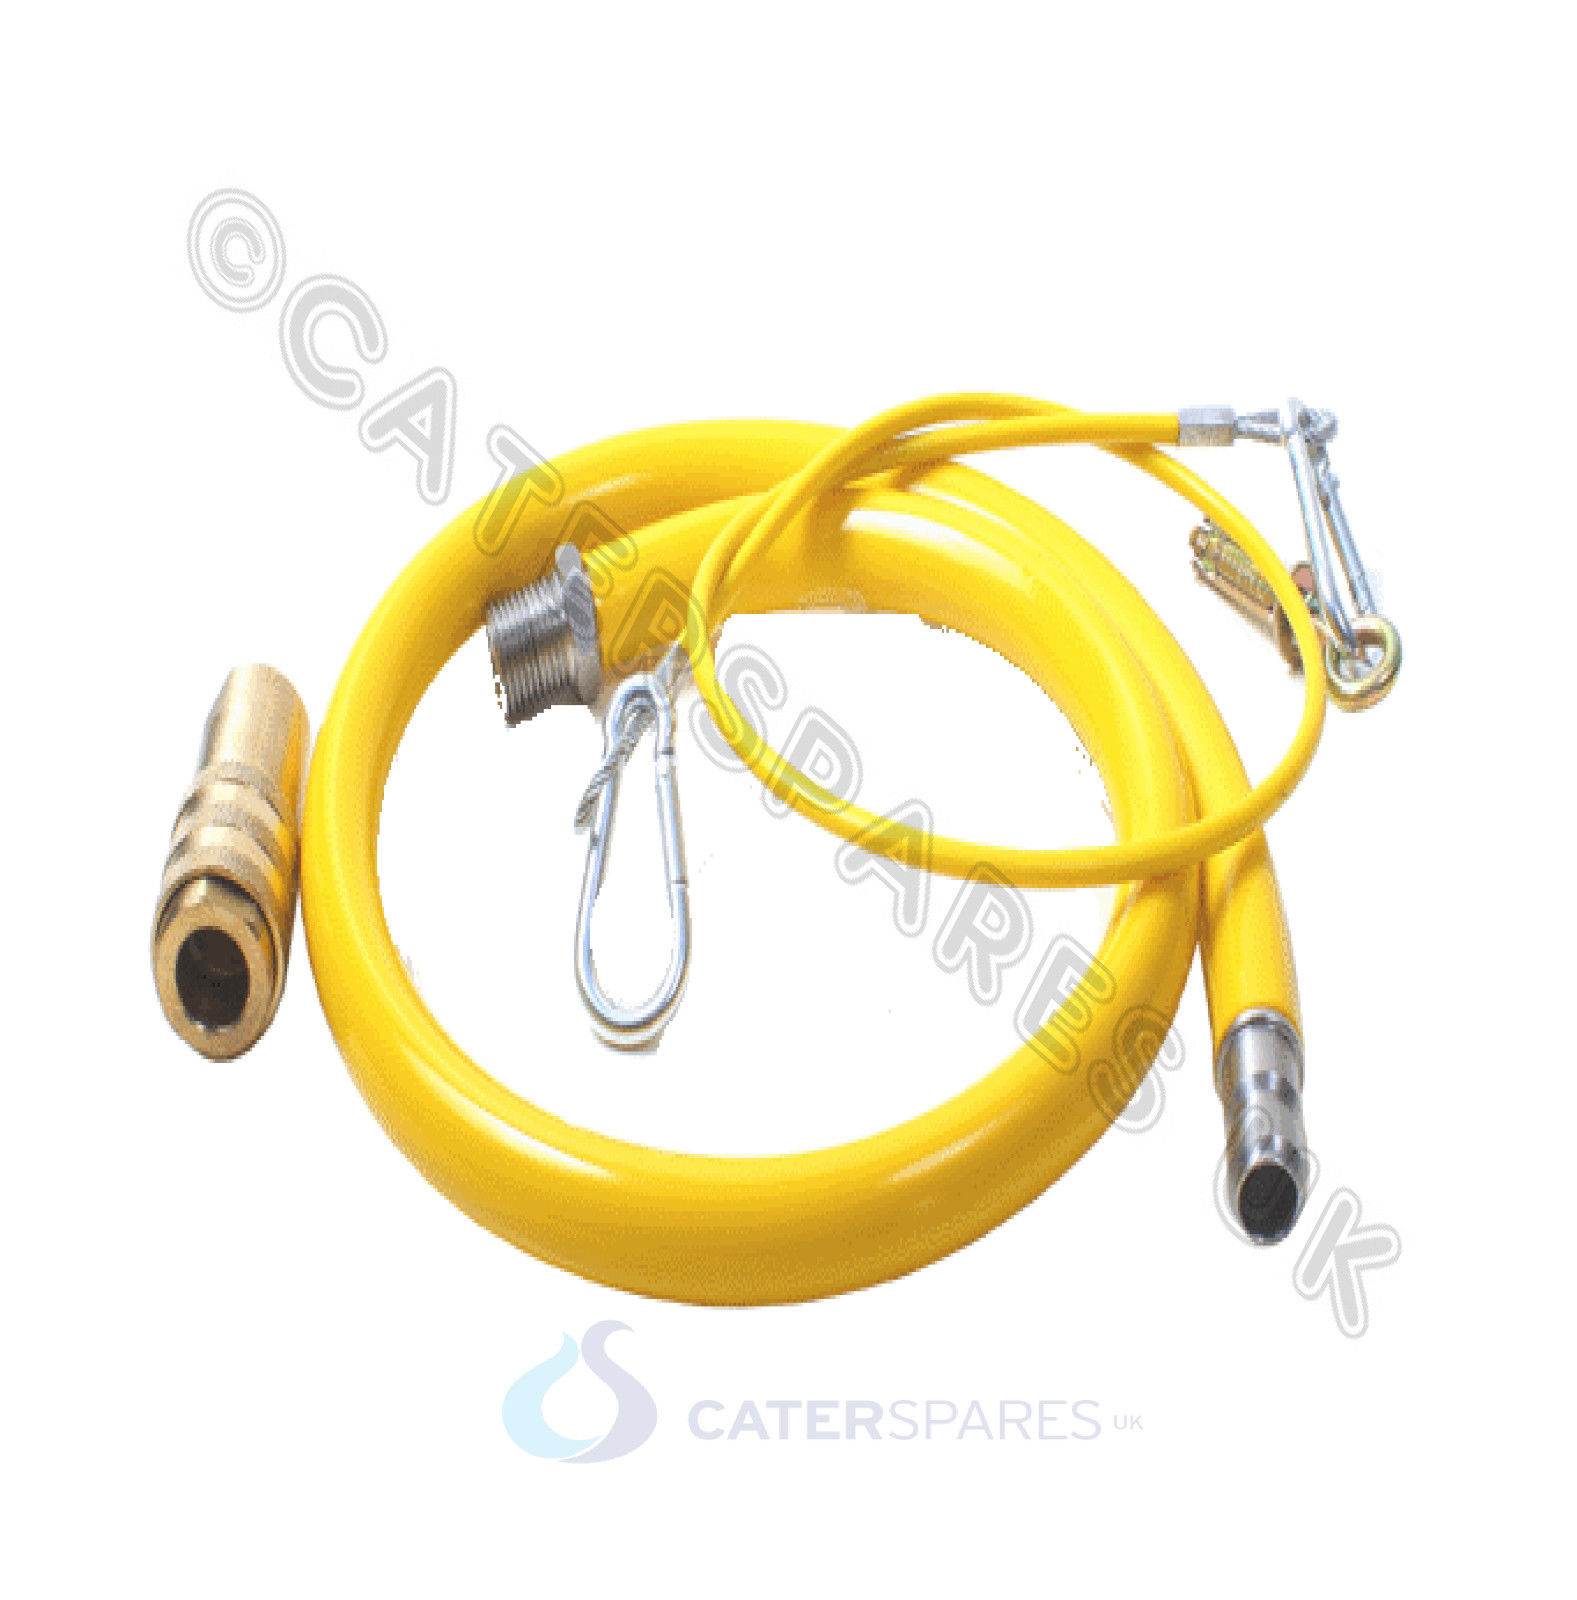 CATERHOSE COMMERCIAL CATERING YELLOW GAS HOSE FLEX ...  sc 1 st  CaterSpares & CATERHOSE COMMERCIAL CATERING YELLOW GAS HOSE FLEX 1/2 1.5 METER ...